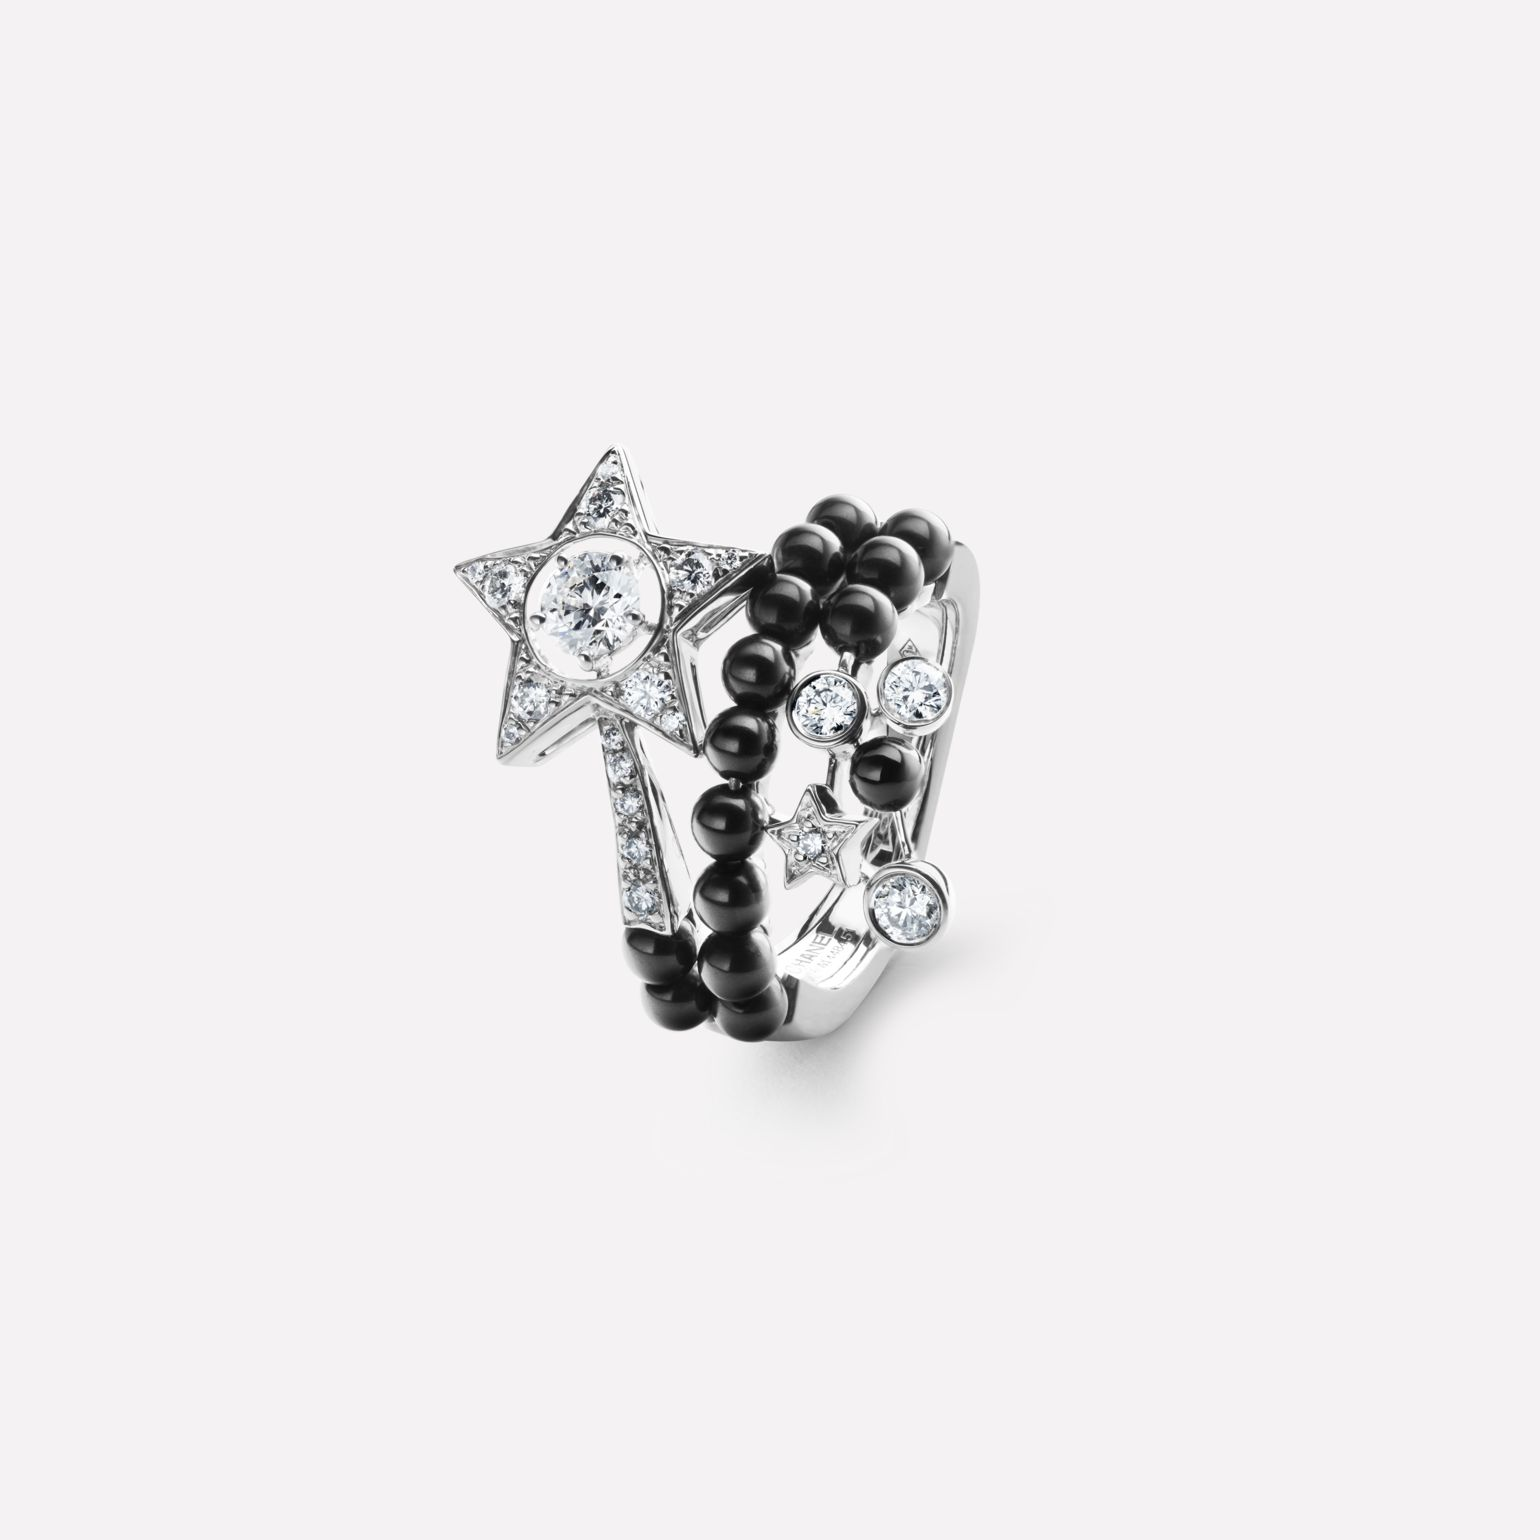 Comète Ring Star ring in 18K white gold, diamonds, black spinels and central diamond